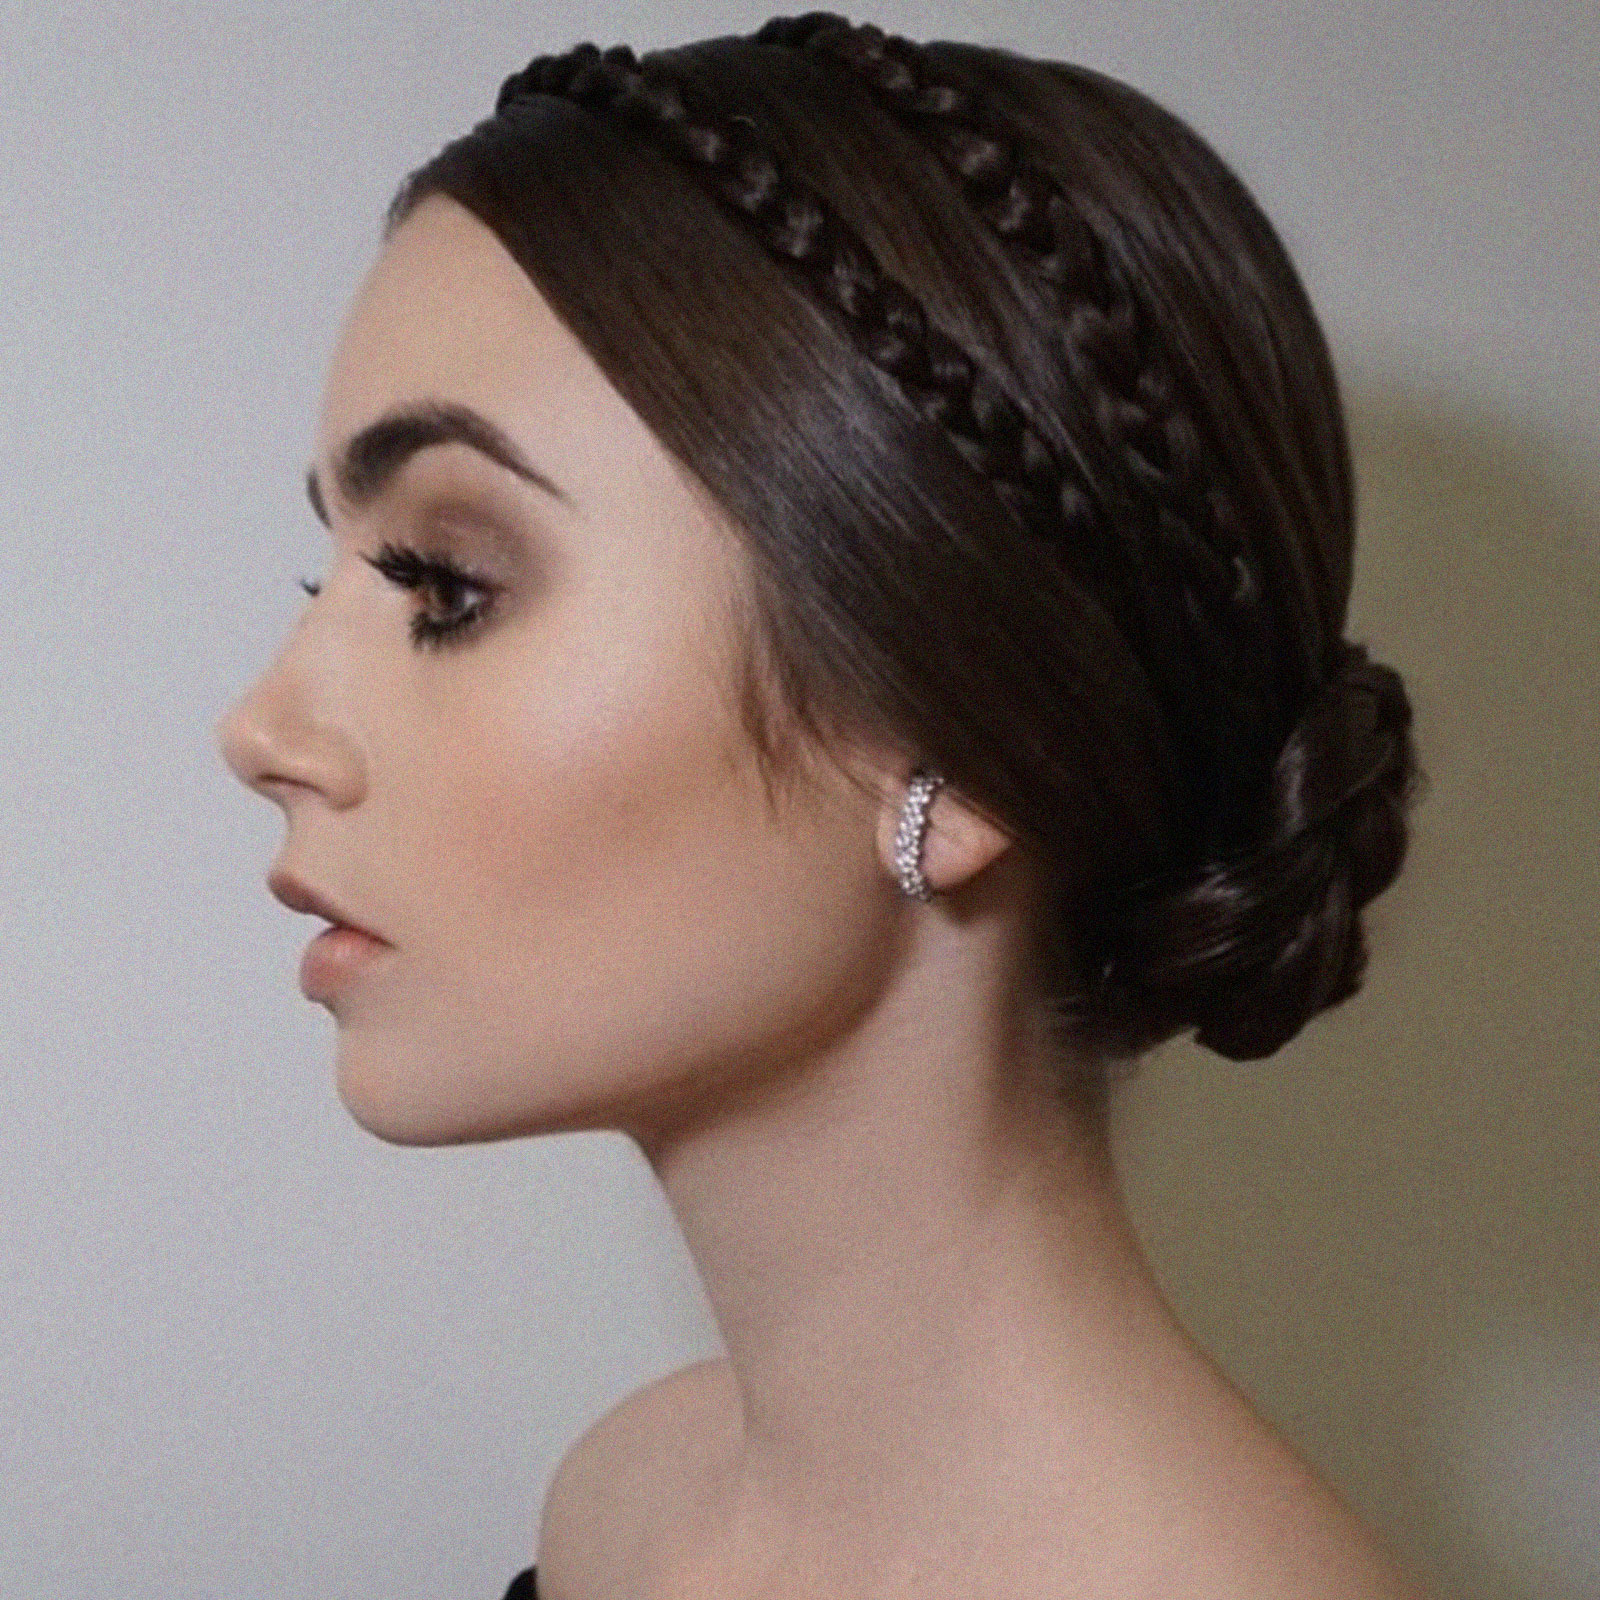 TEEN VOGUE - Lily Collins Wore a Braided Crown at the Governors Awards